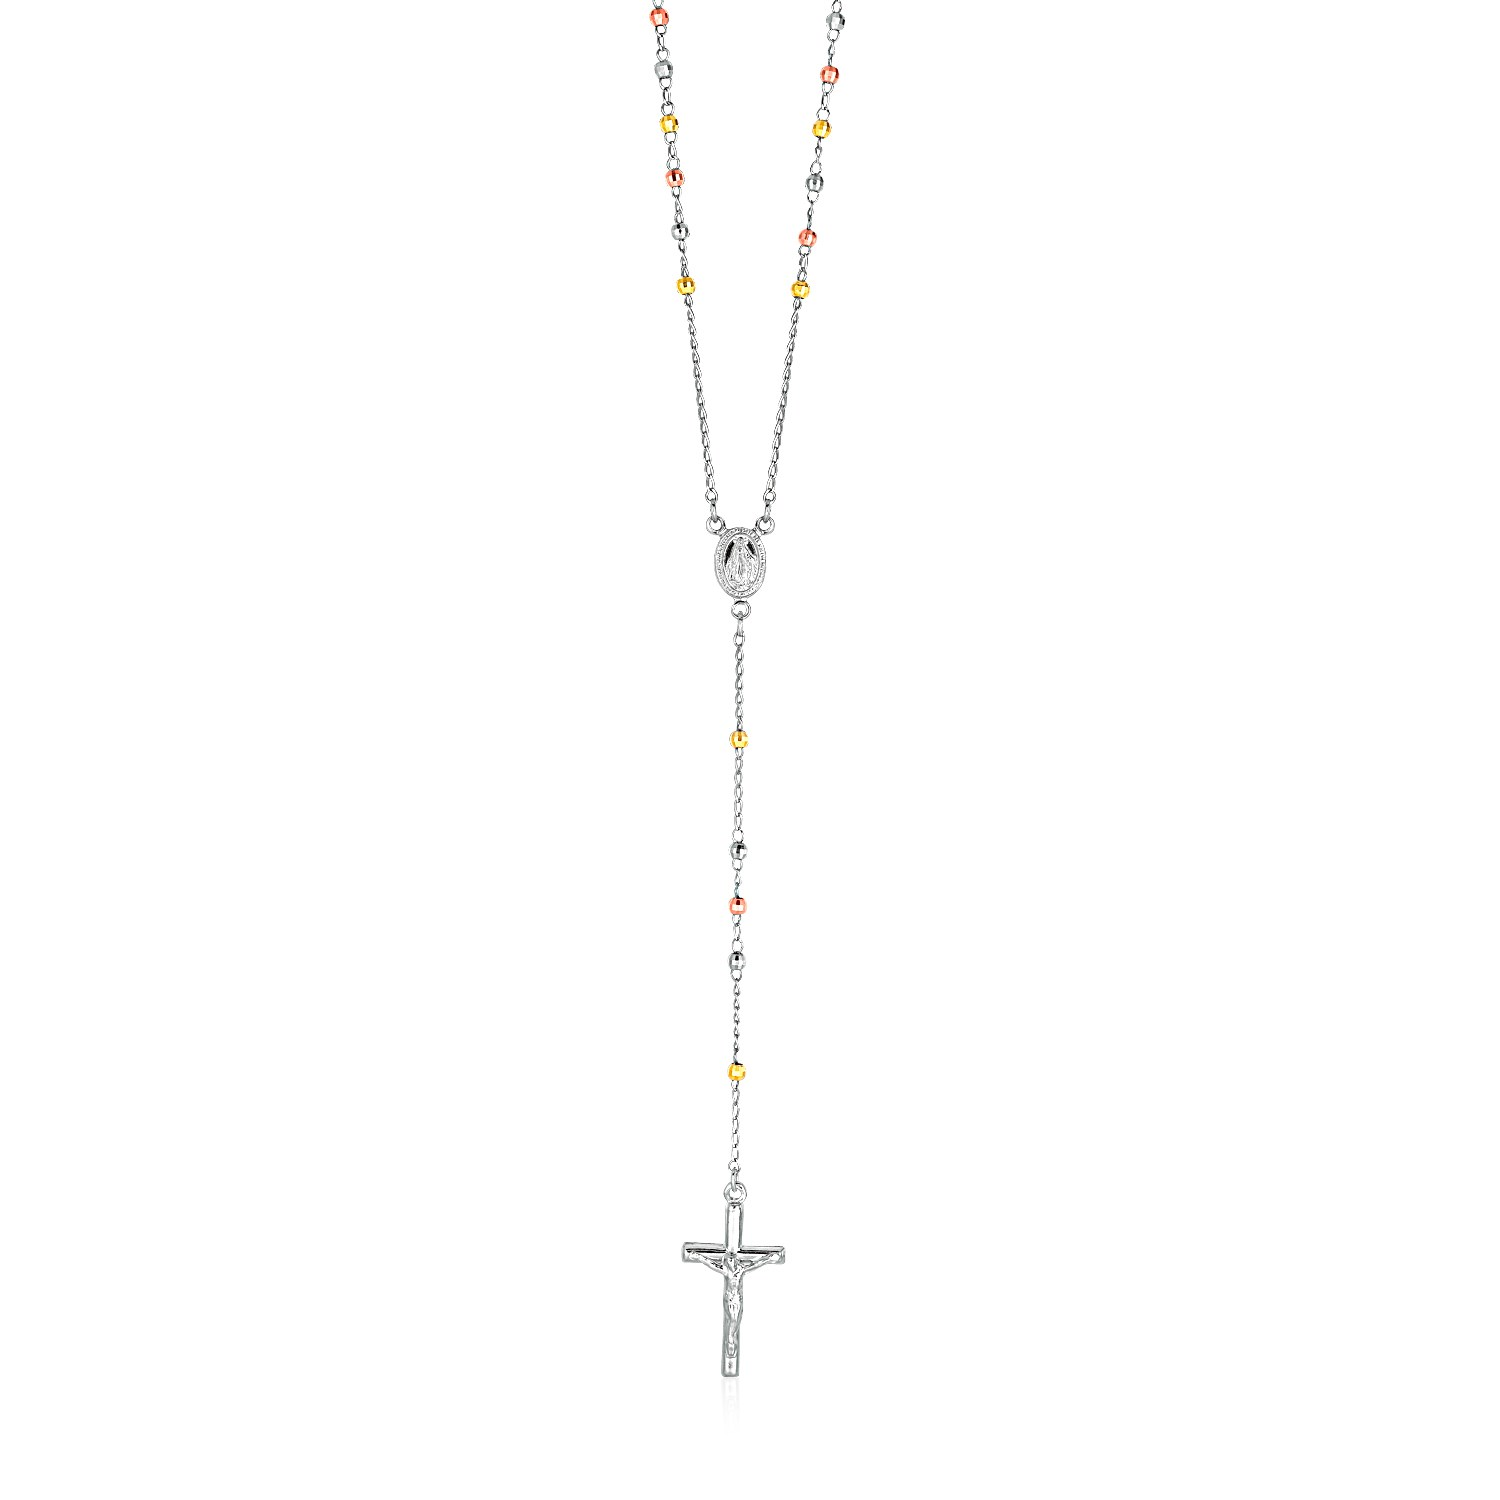 Three Toned Rosary Chain and Bead Necklace in Sterling Silver